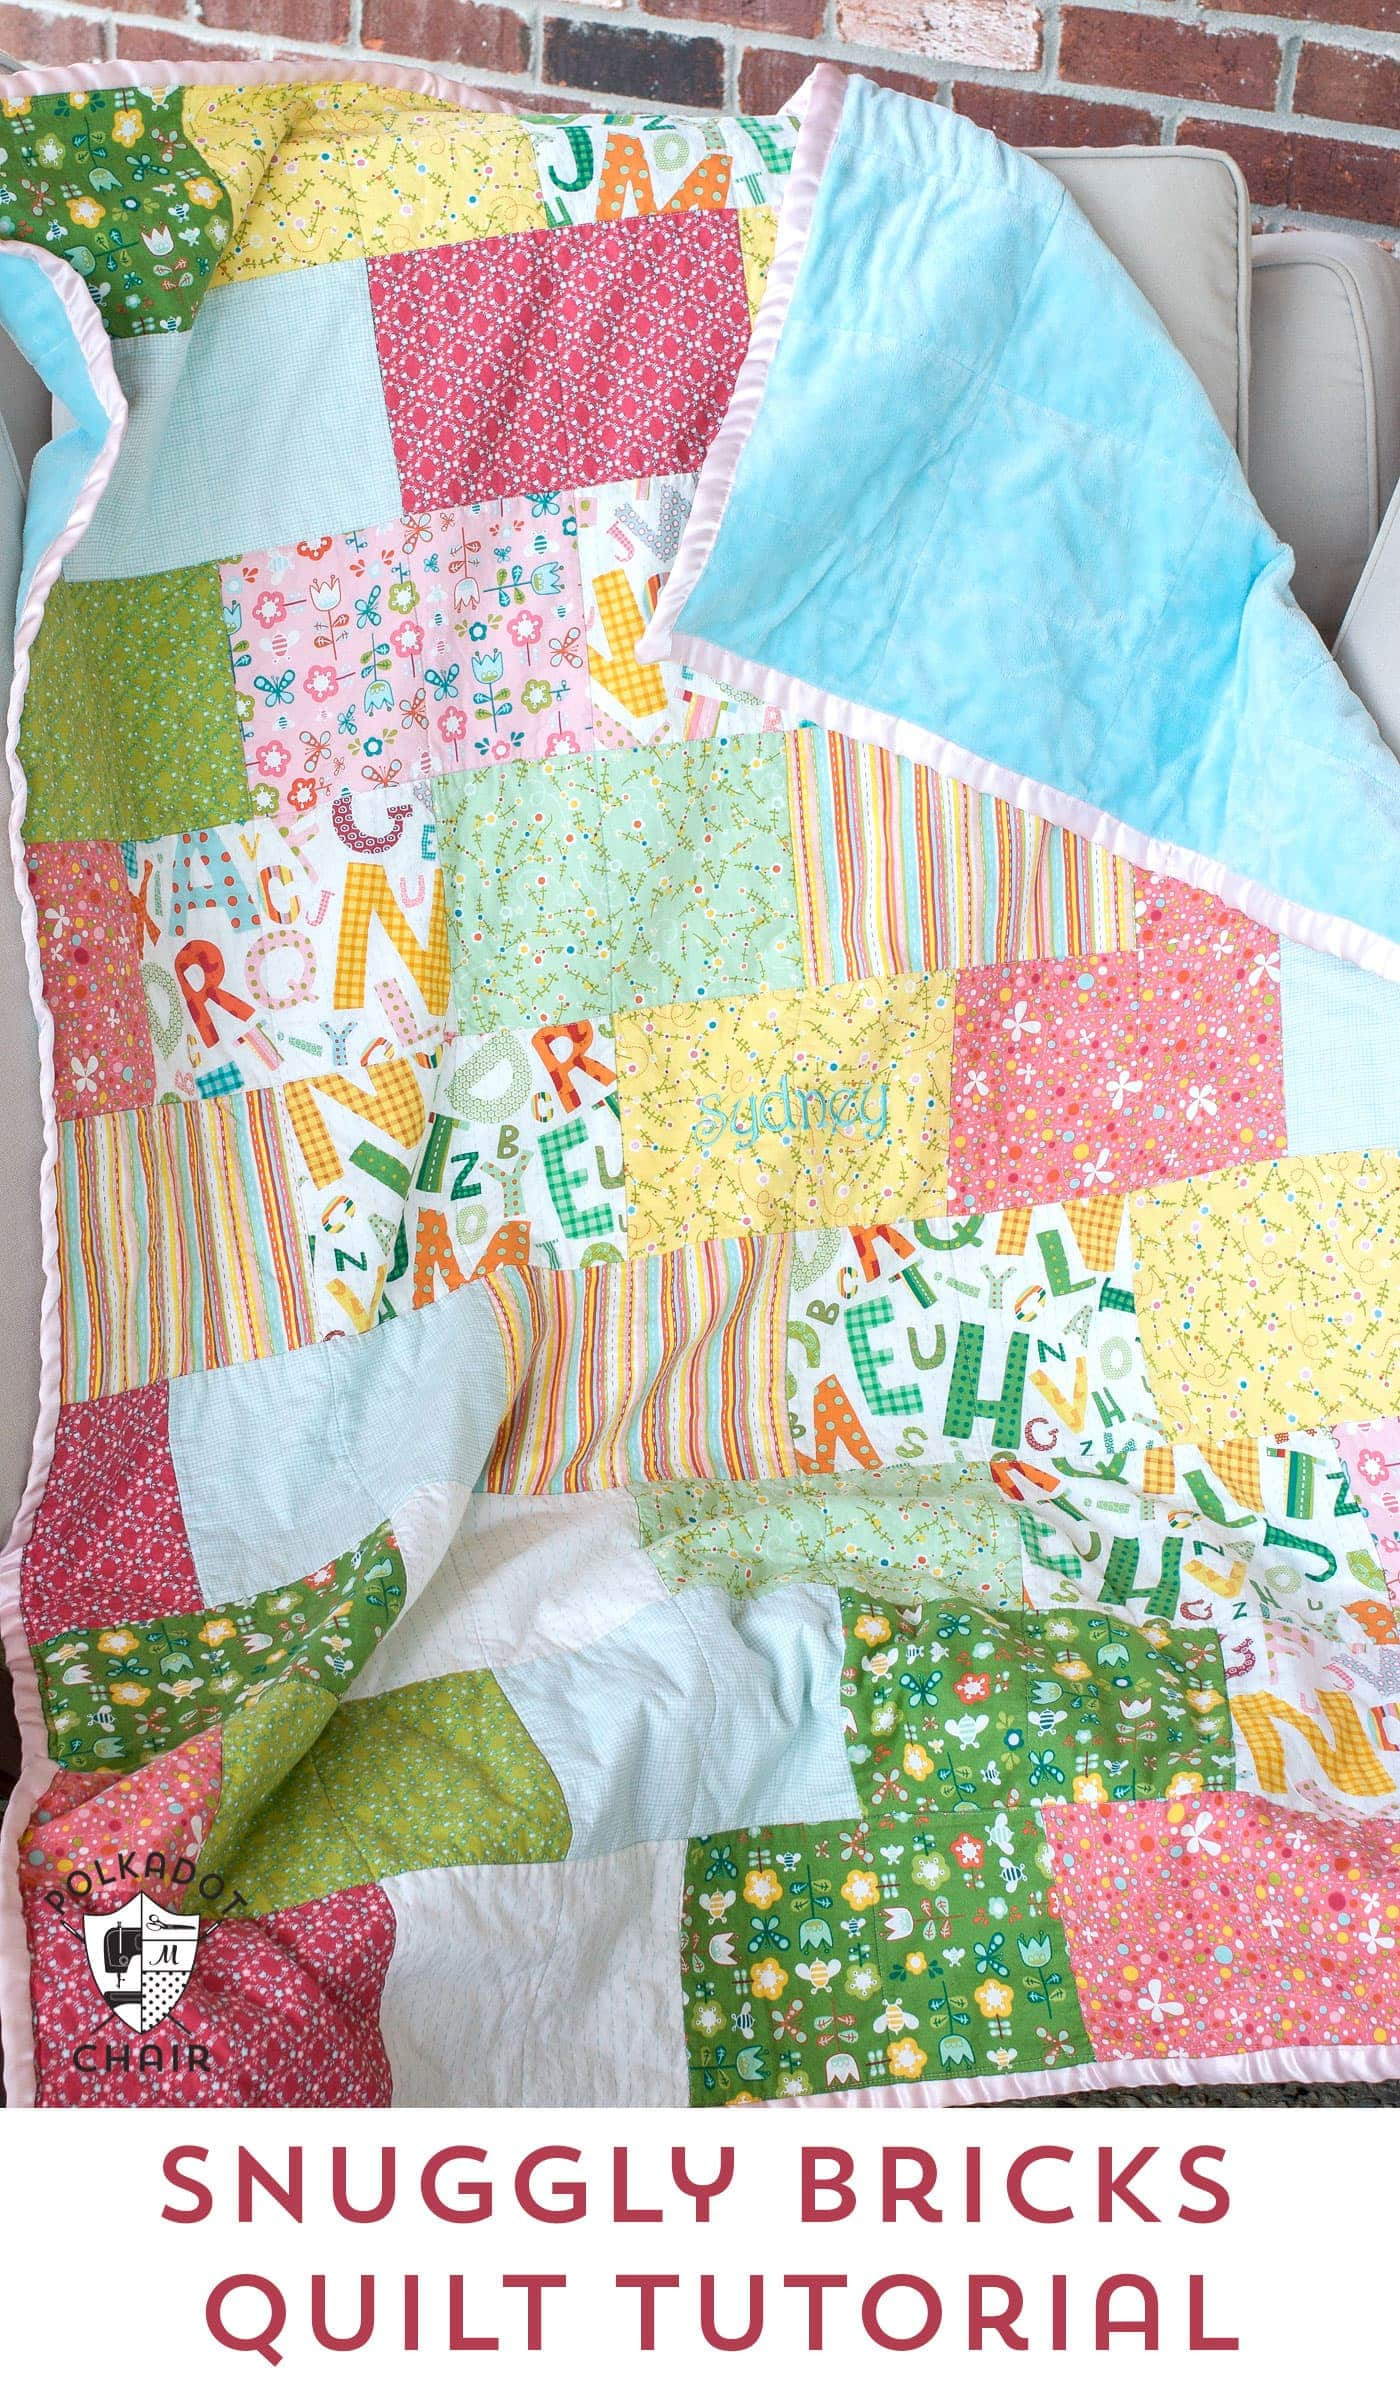 hanging chair images steelcase jersey snuggly bricks quilt: tuesday tutorial.. - the polkadot